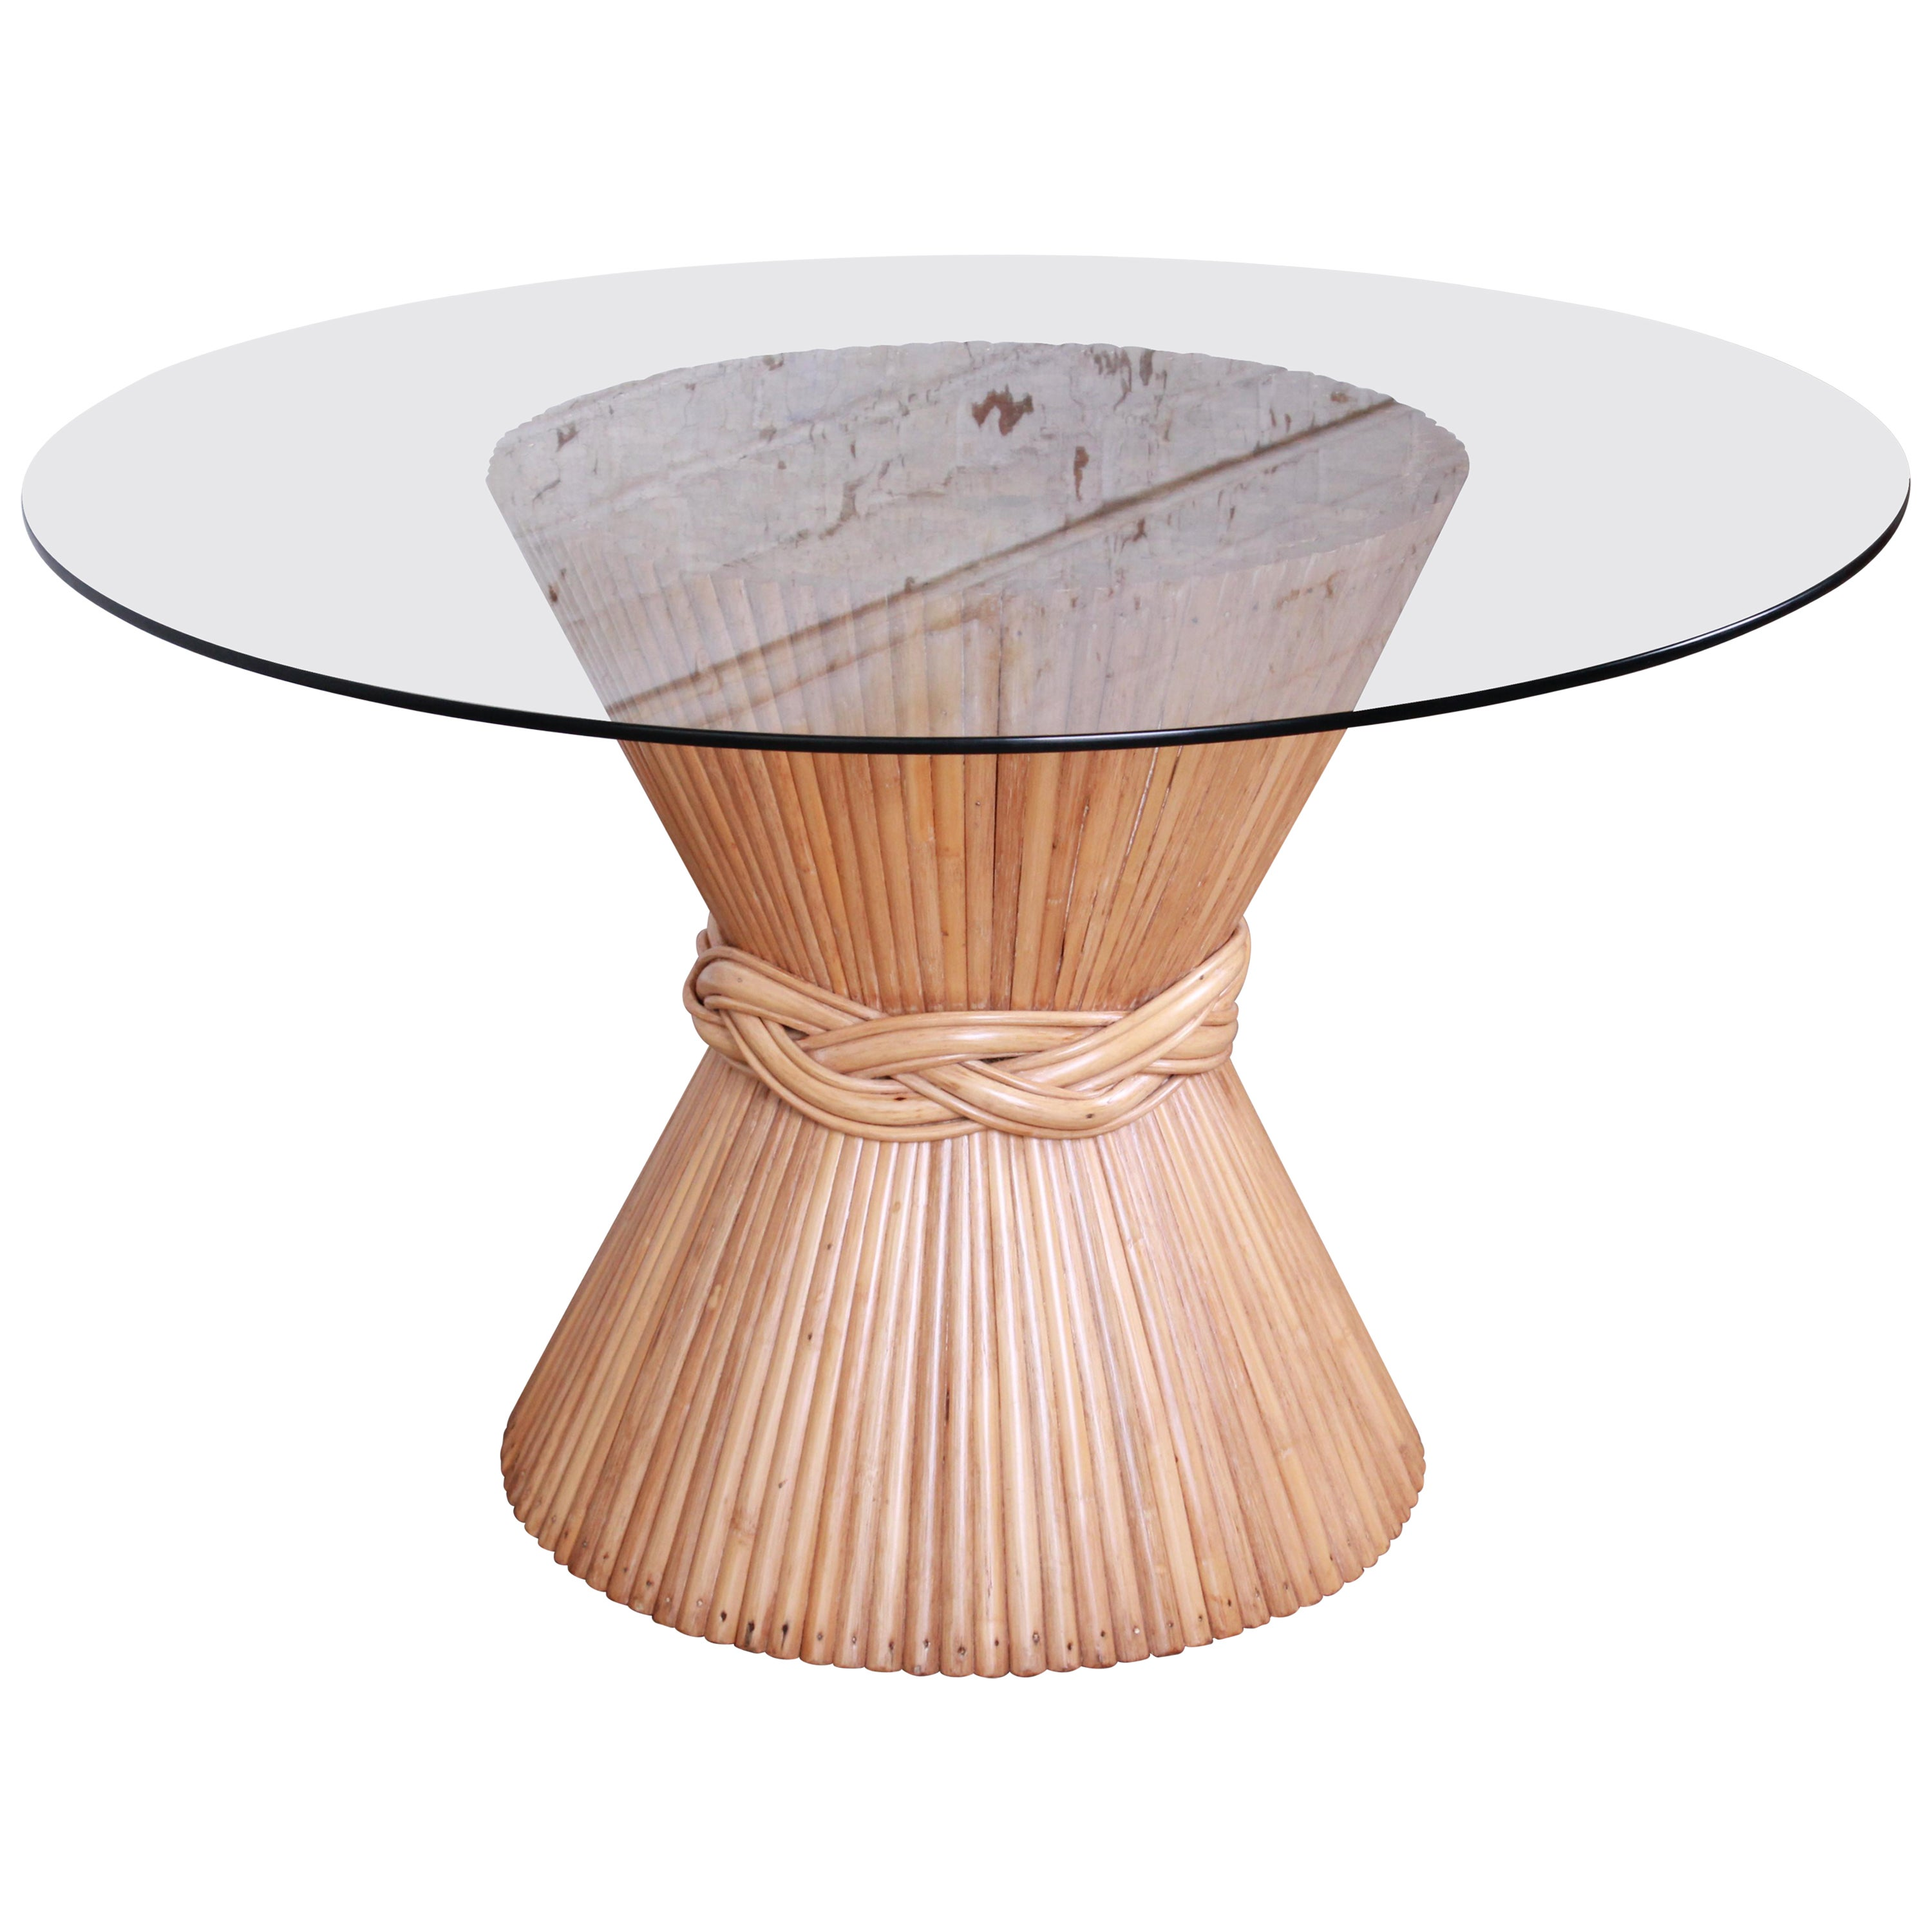 McGuire Sheaf of Wheat Bamboo Pedestal Dining Table